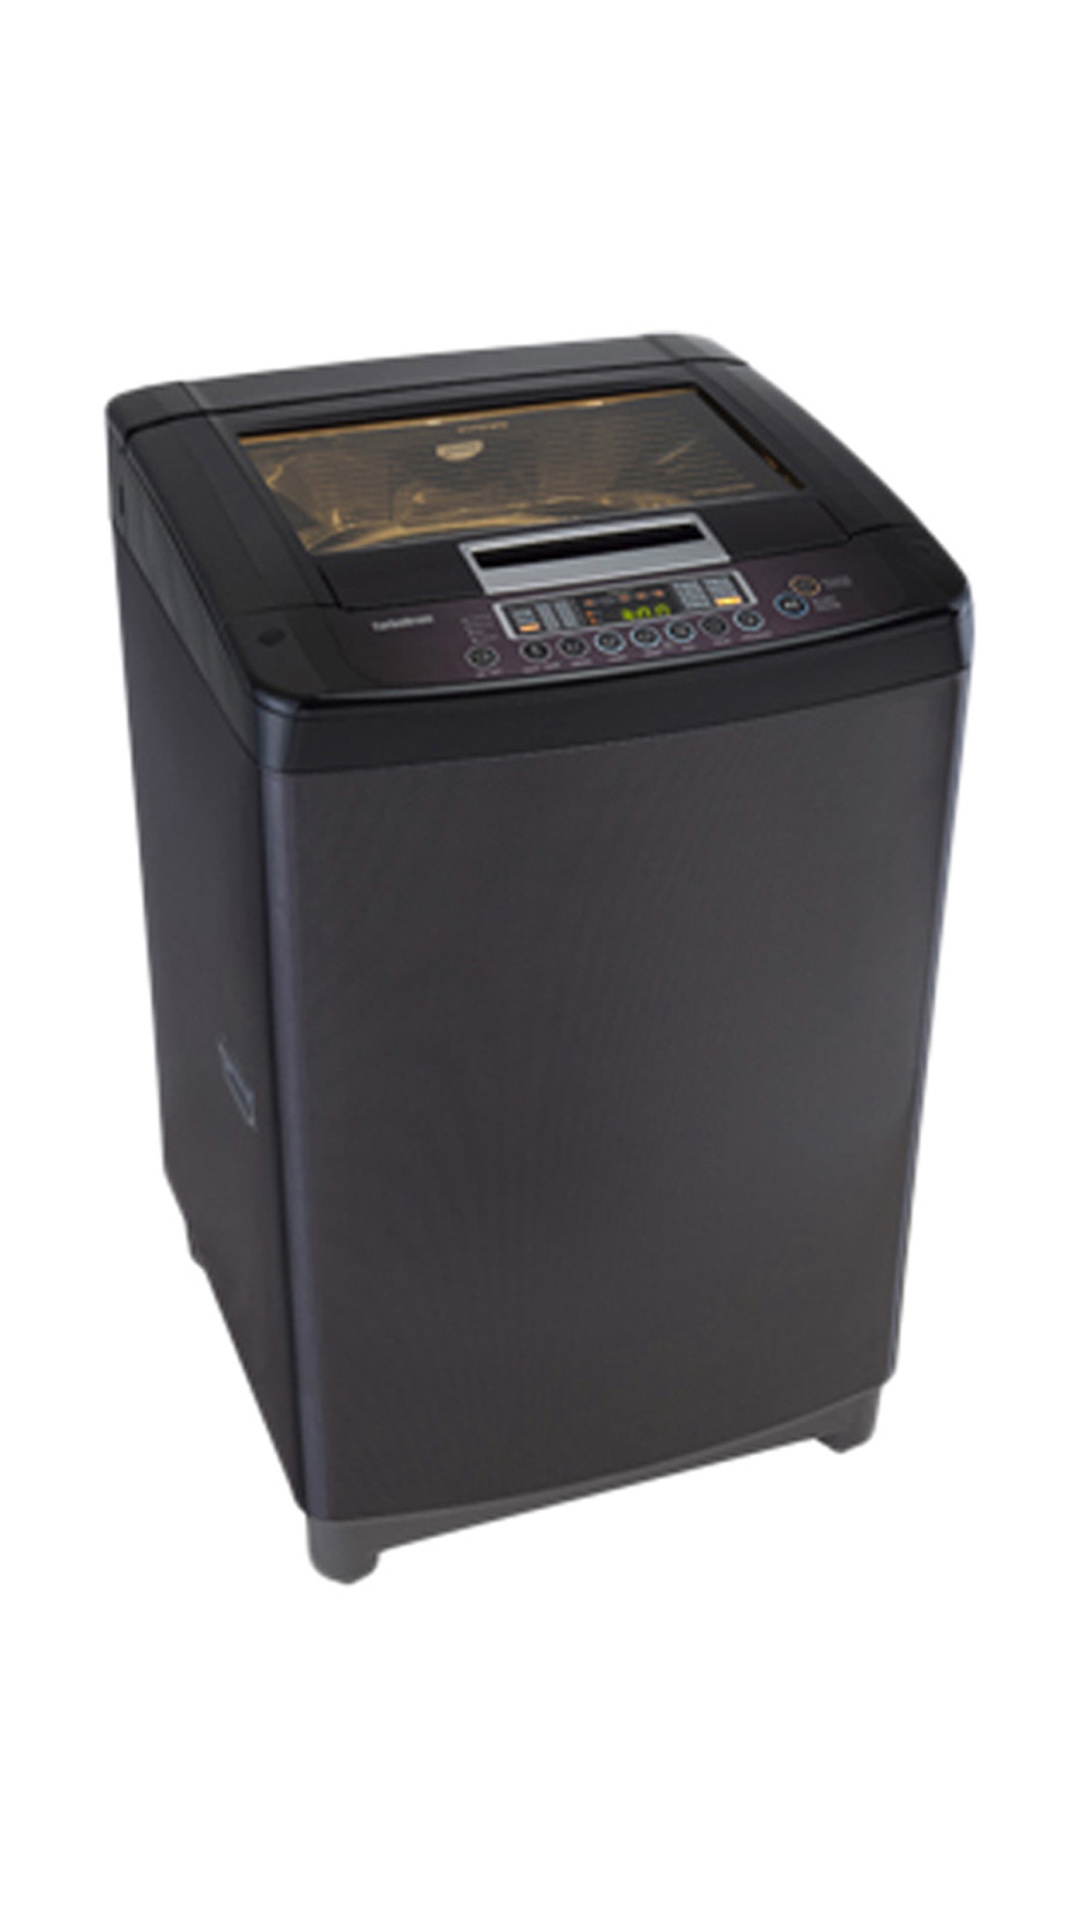 LG T8567TEELK Fully Automatic Top Loading 7.5 Kg Washing Machine